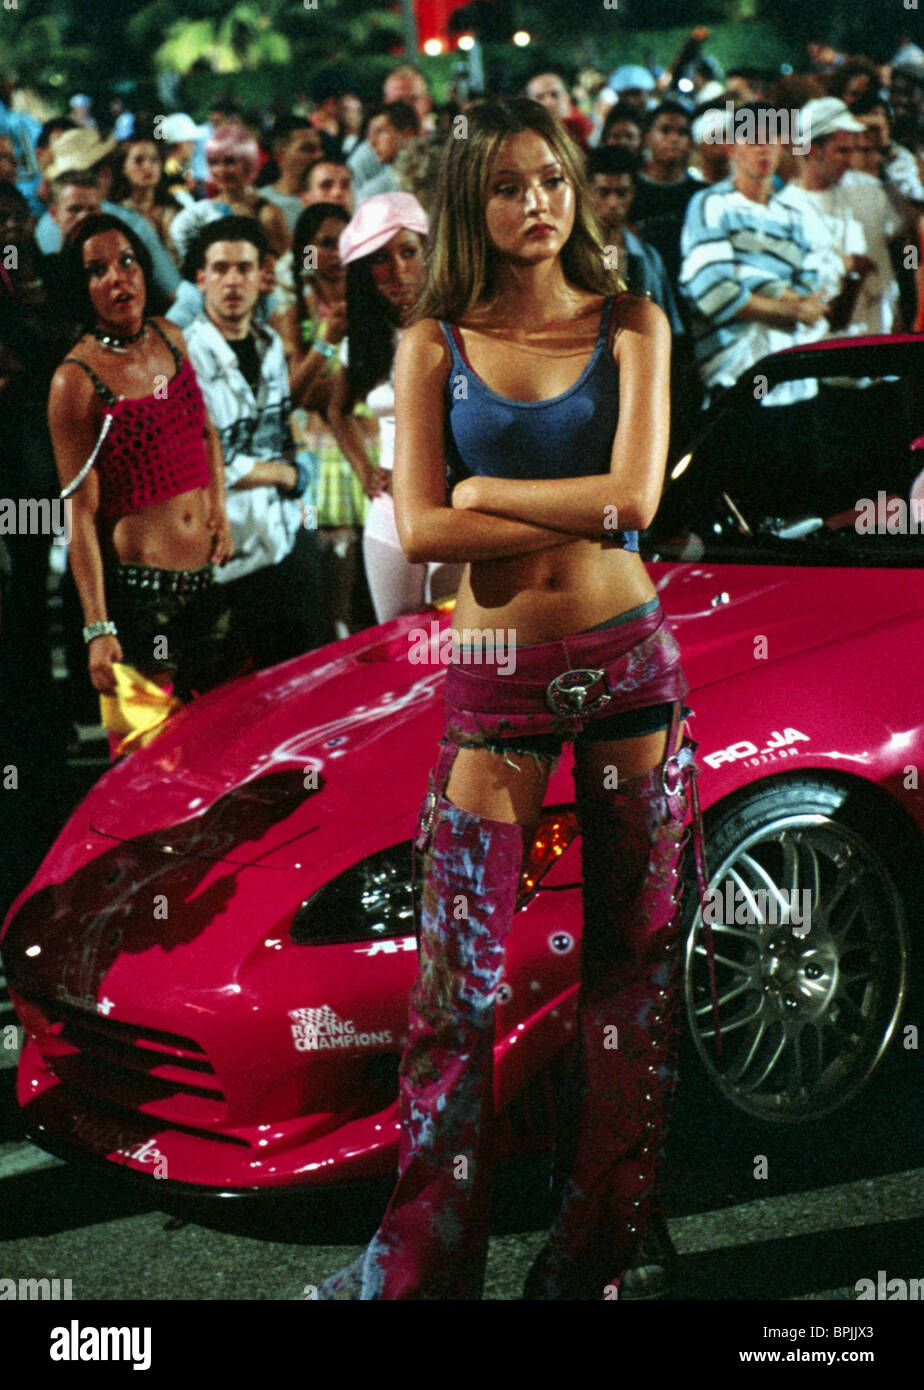 devon aoki 2 fast 2 furious the fast and the furious 2 2003 stock photo 31142779 alamy. Black Bedroom Furniture Sets. Home Design Ideas